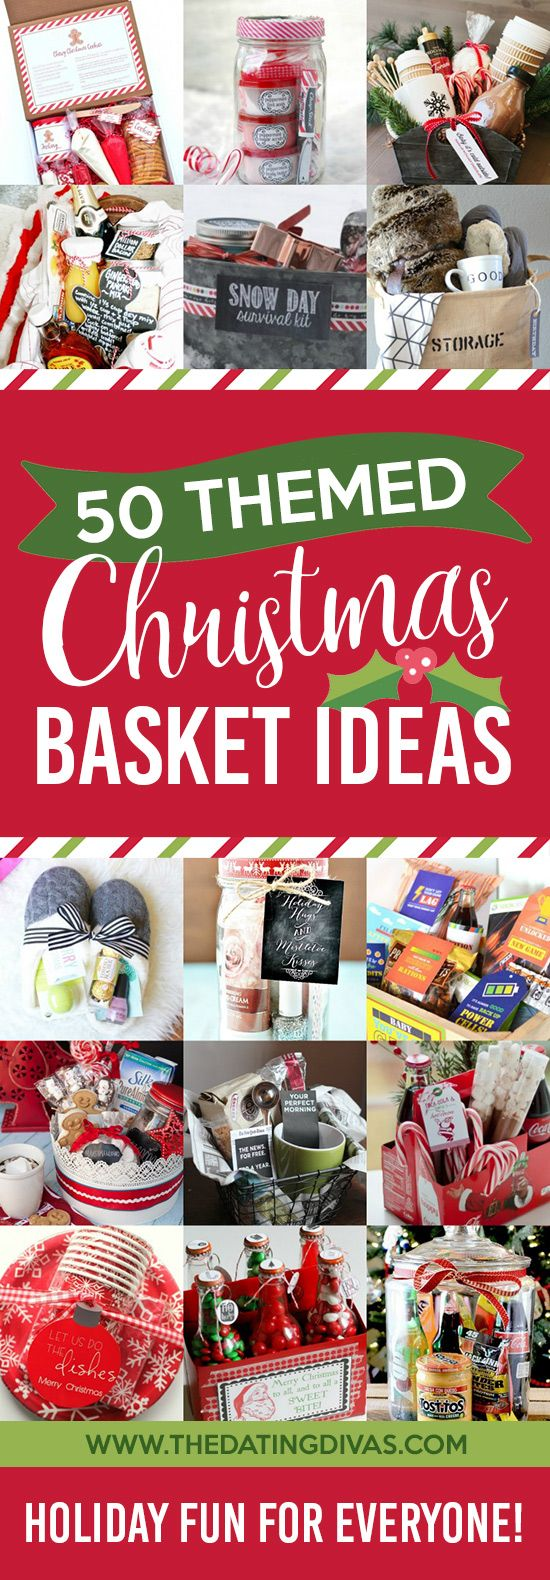 Christmas Gift Basket Ideas for Everyone | Gift Ideas | Pinterest ...